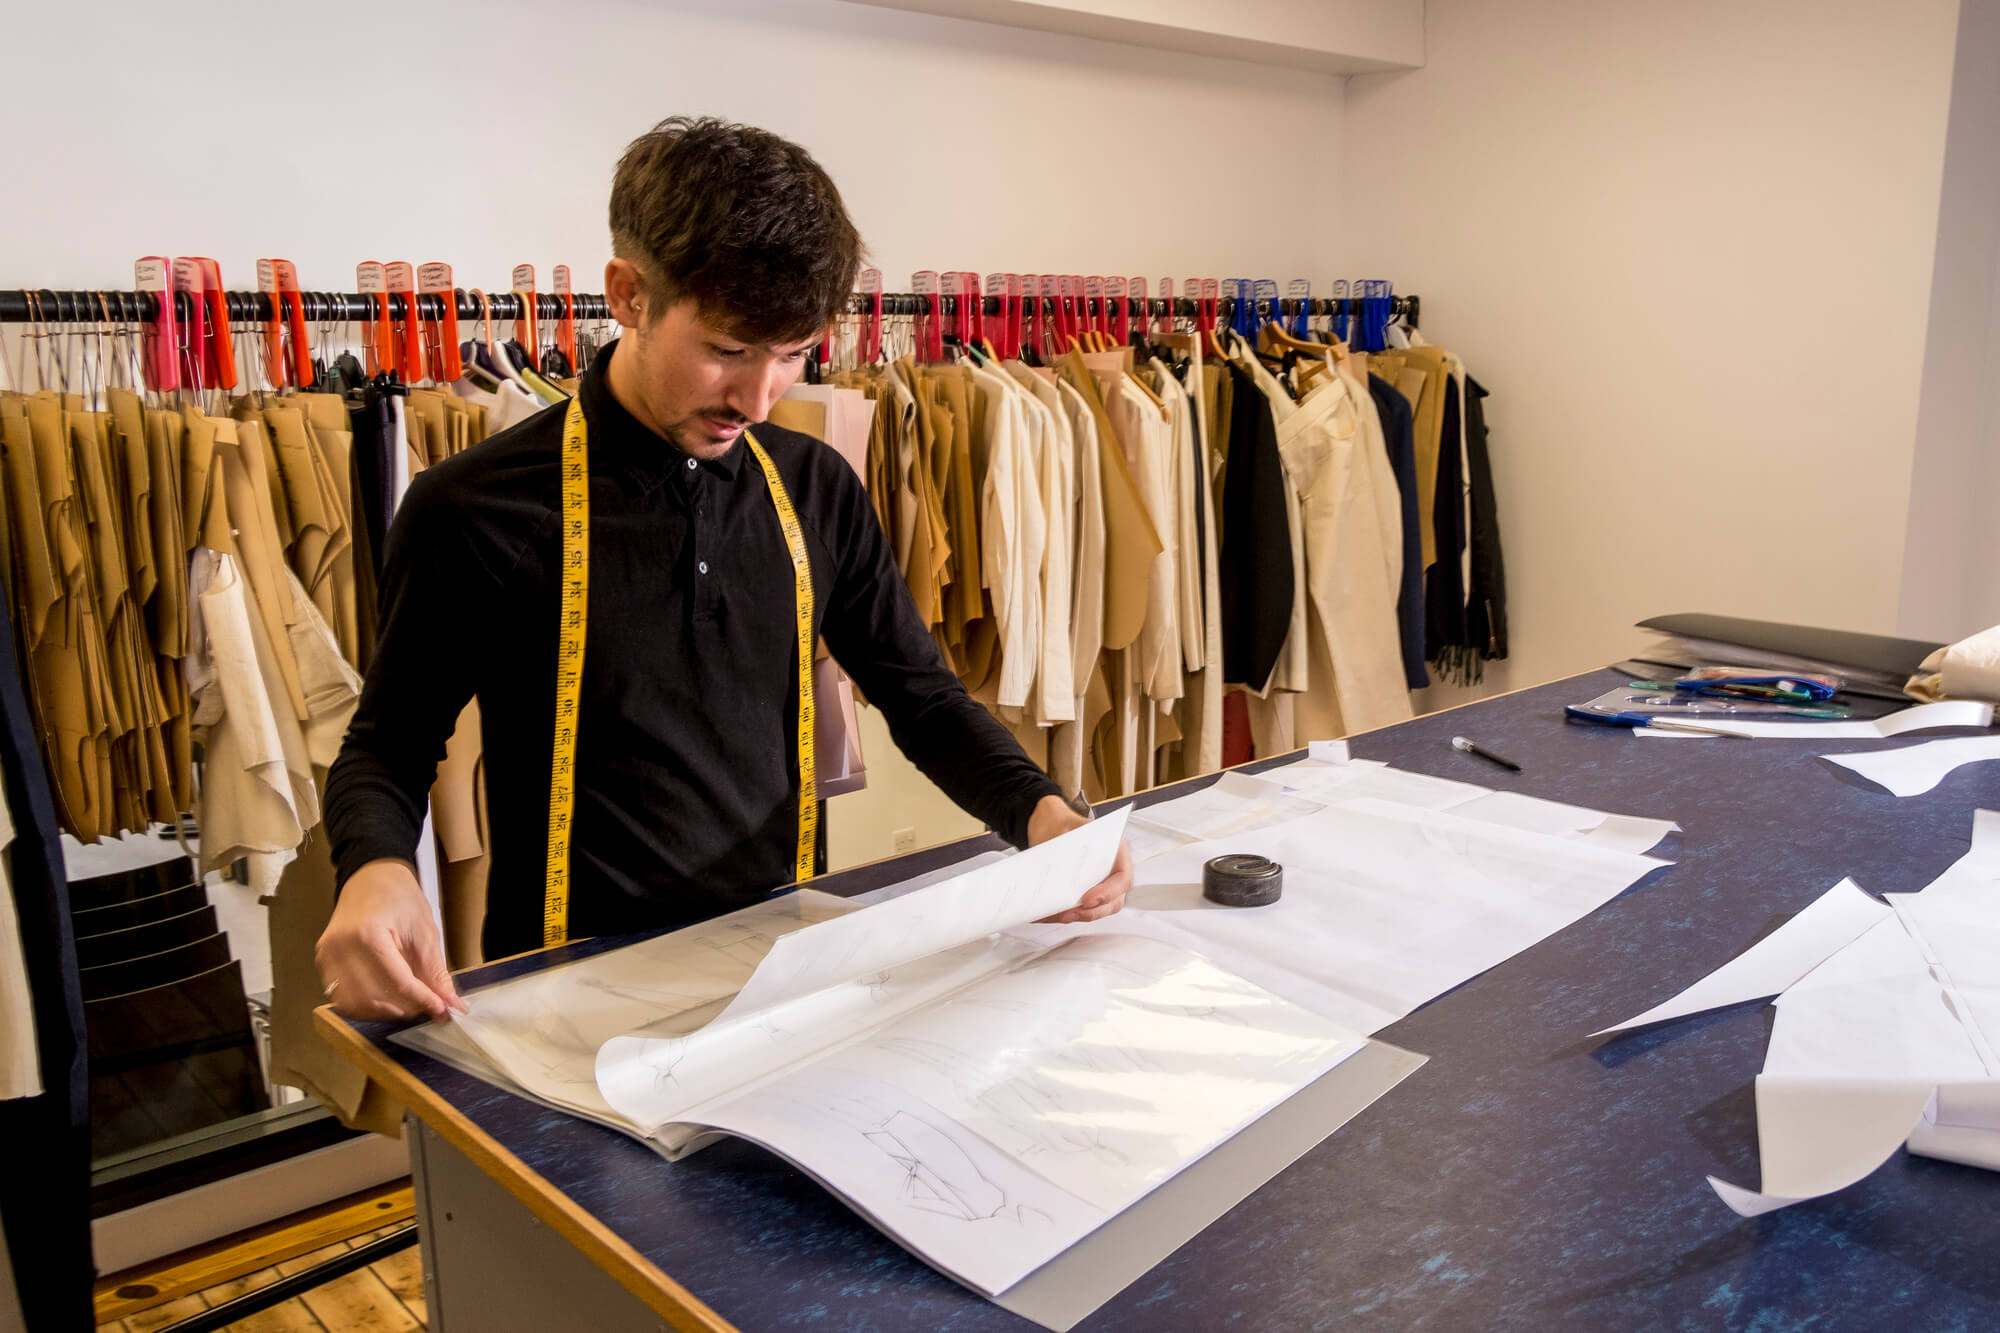 A student in the Fashion and Textiles studio at the Chandos Pole Street site